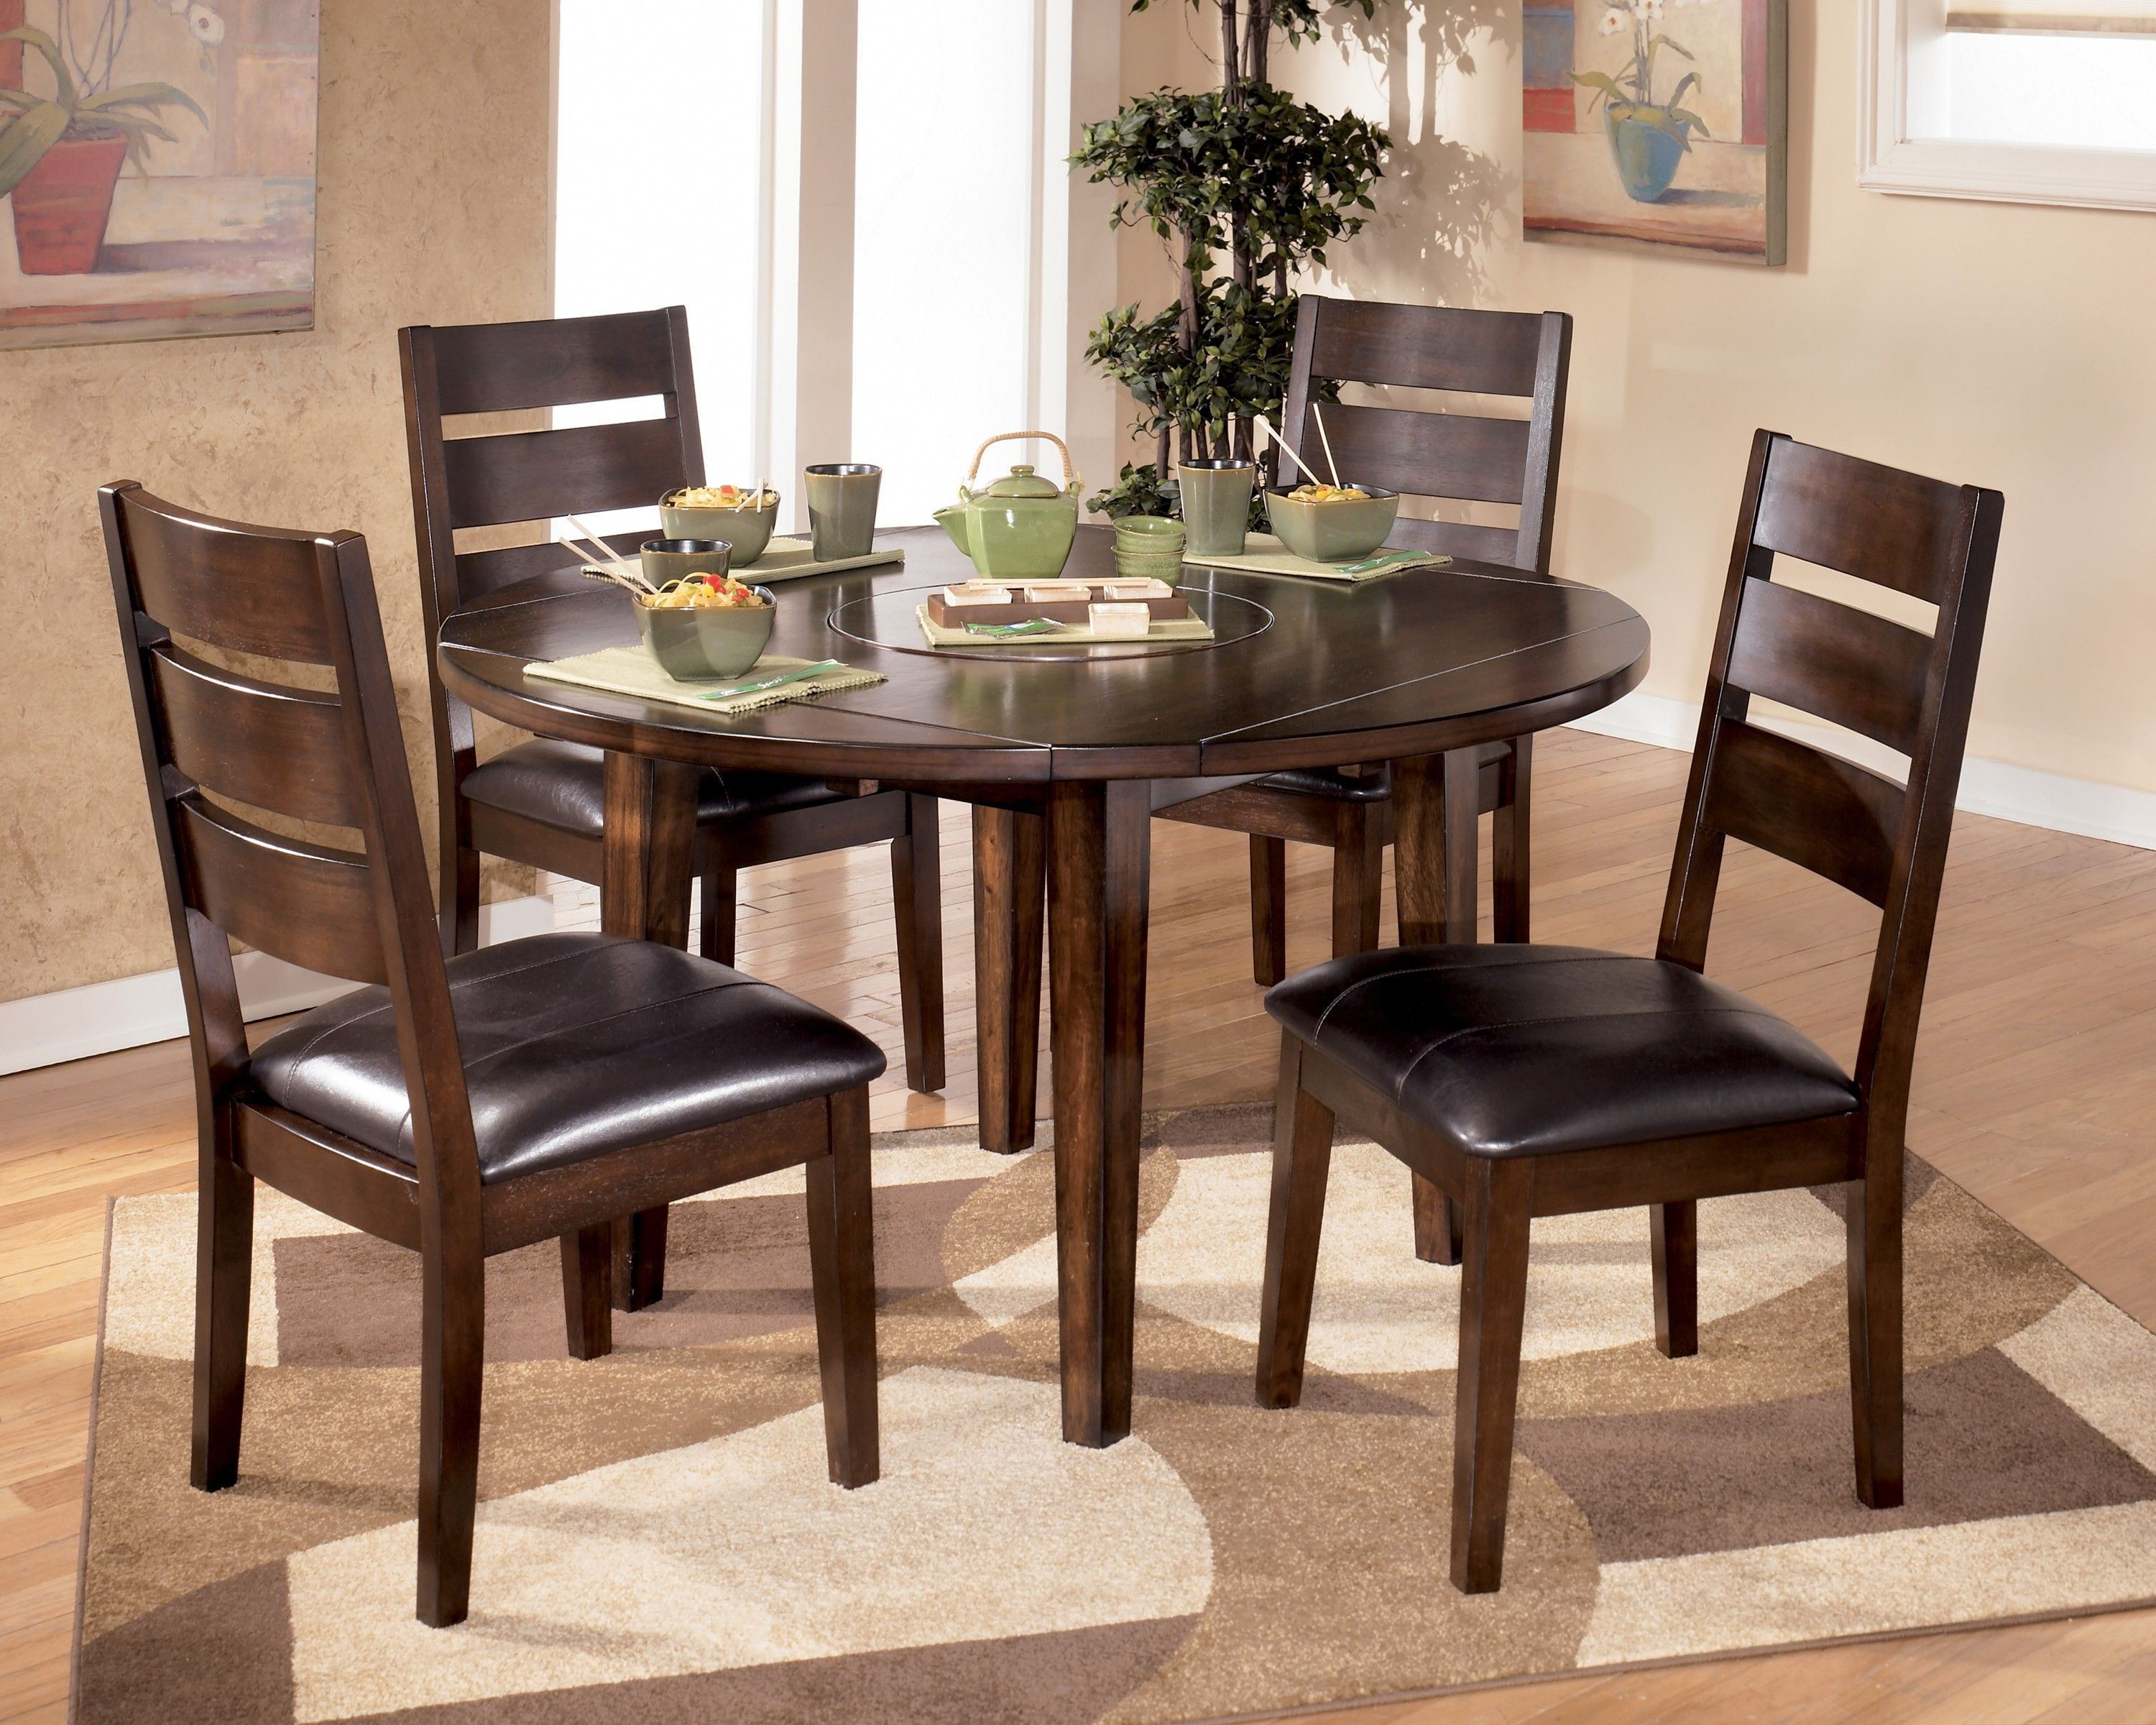 Round Dining Table Furniture design kitchen New in House Designer Room